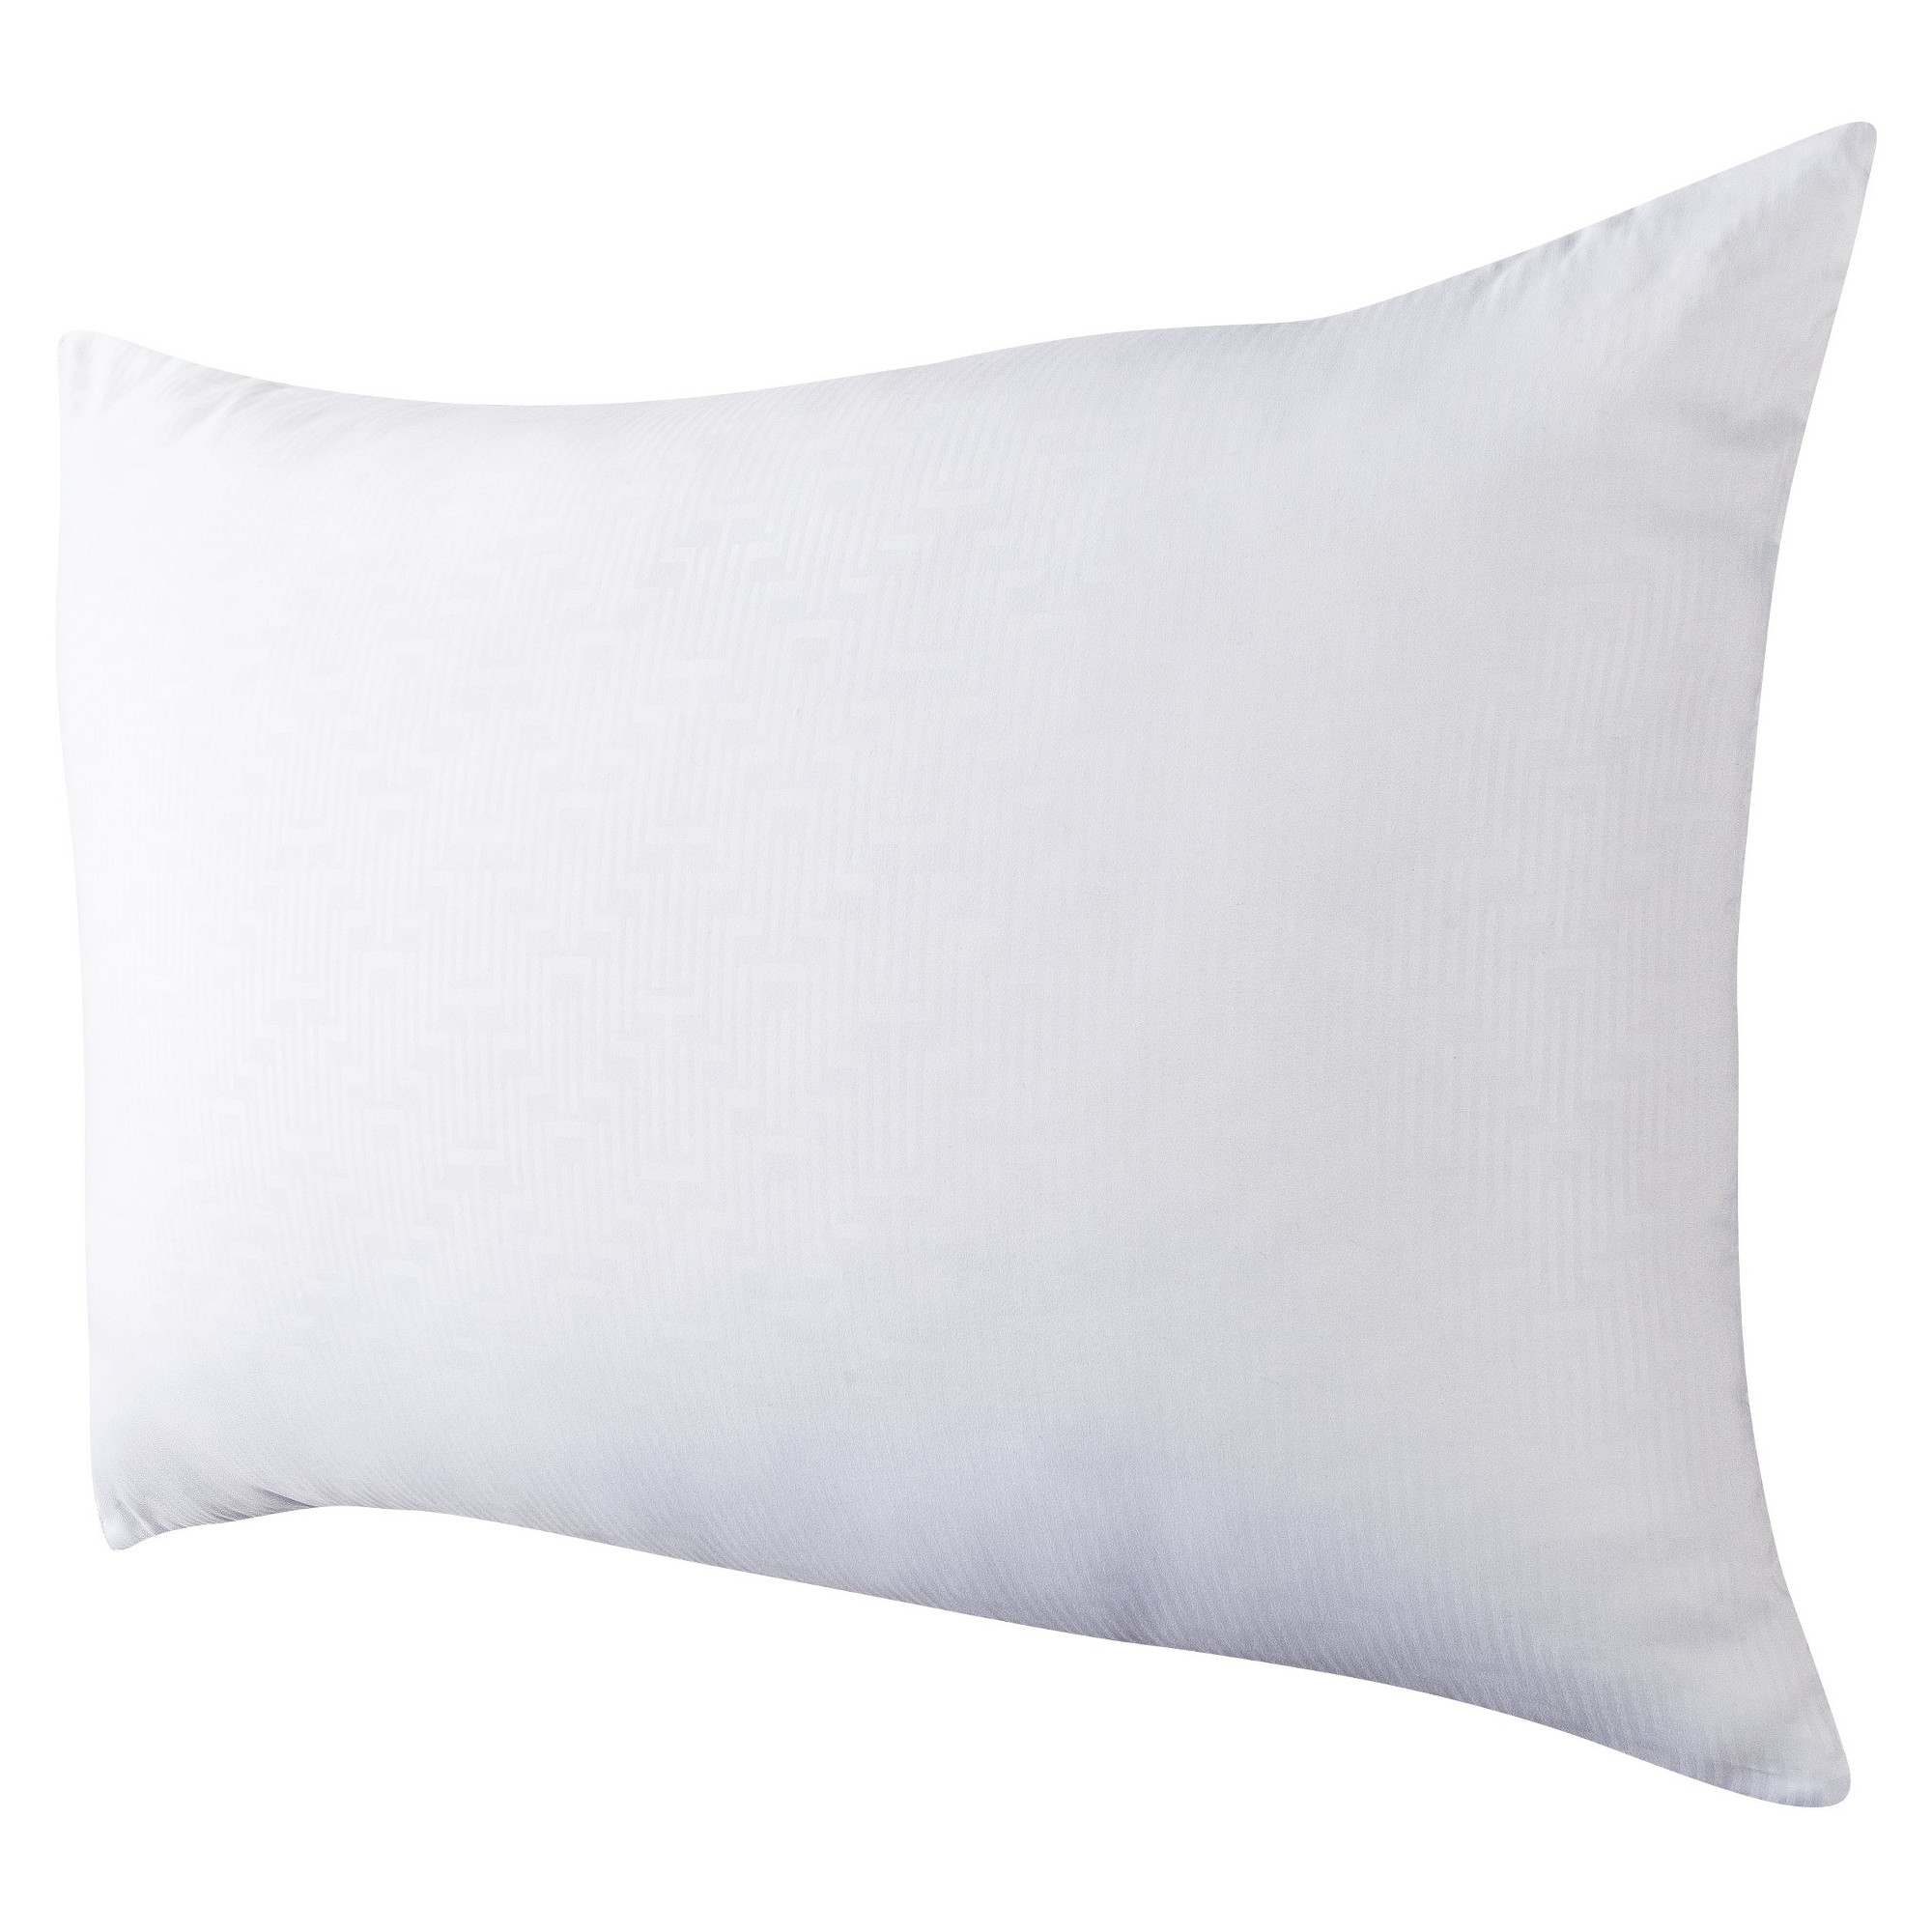 Plush Pillow Standard/Queen White - Room Essentials , Size: Single